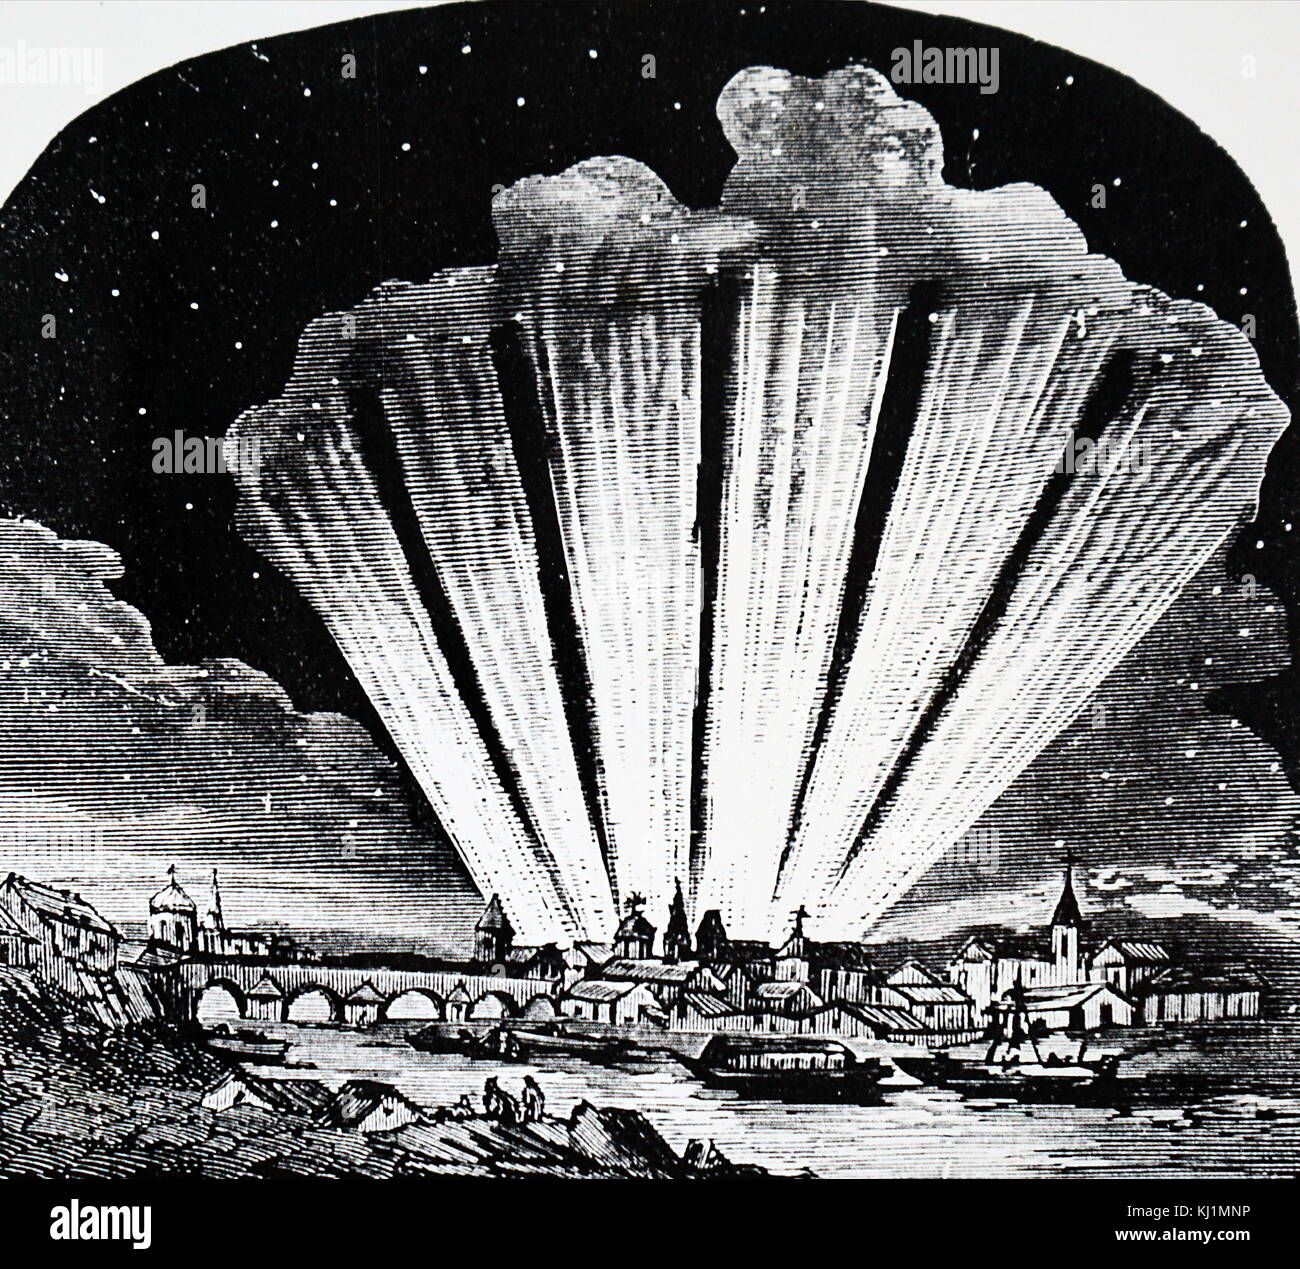 Engraving depicting the Great Comet of 1744. Dated 18th Century